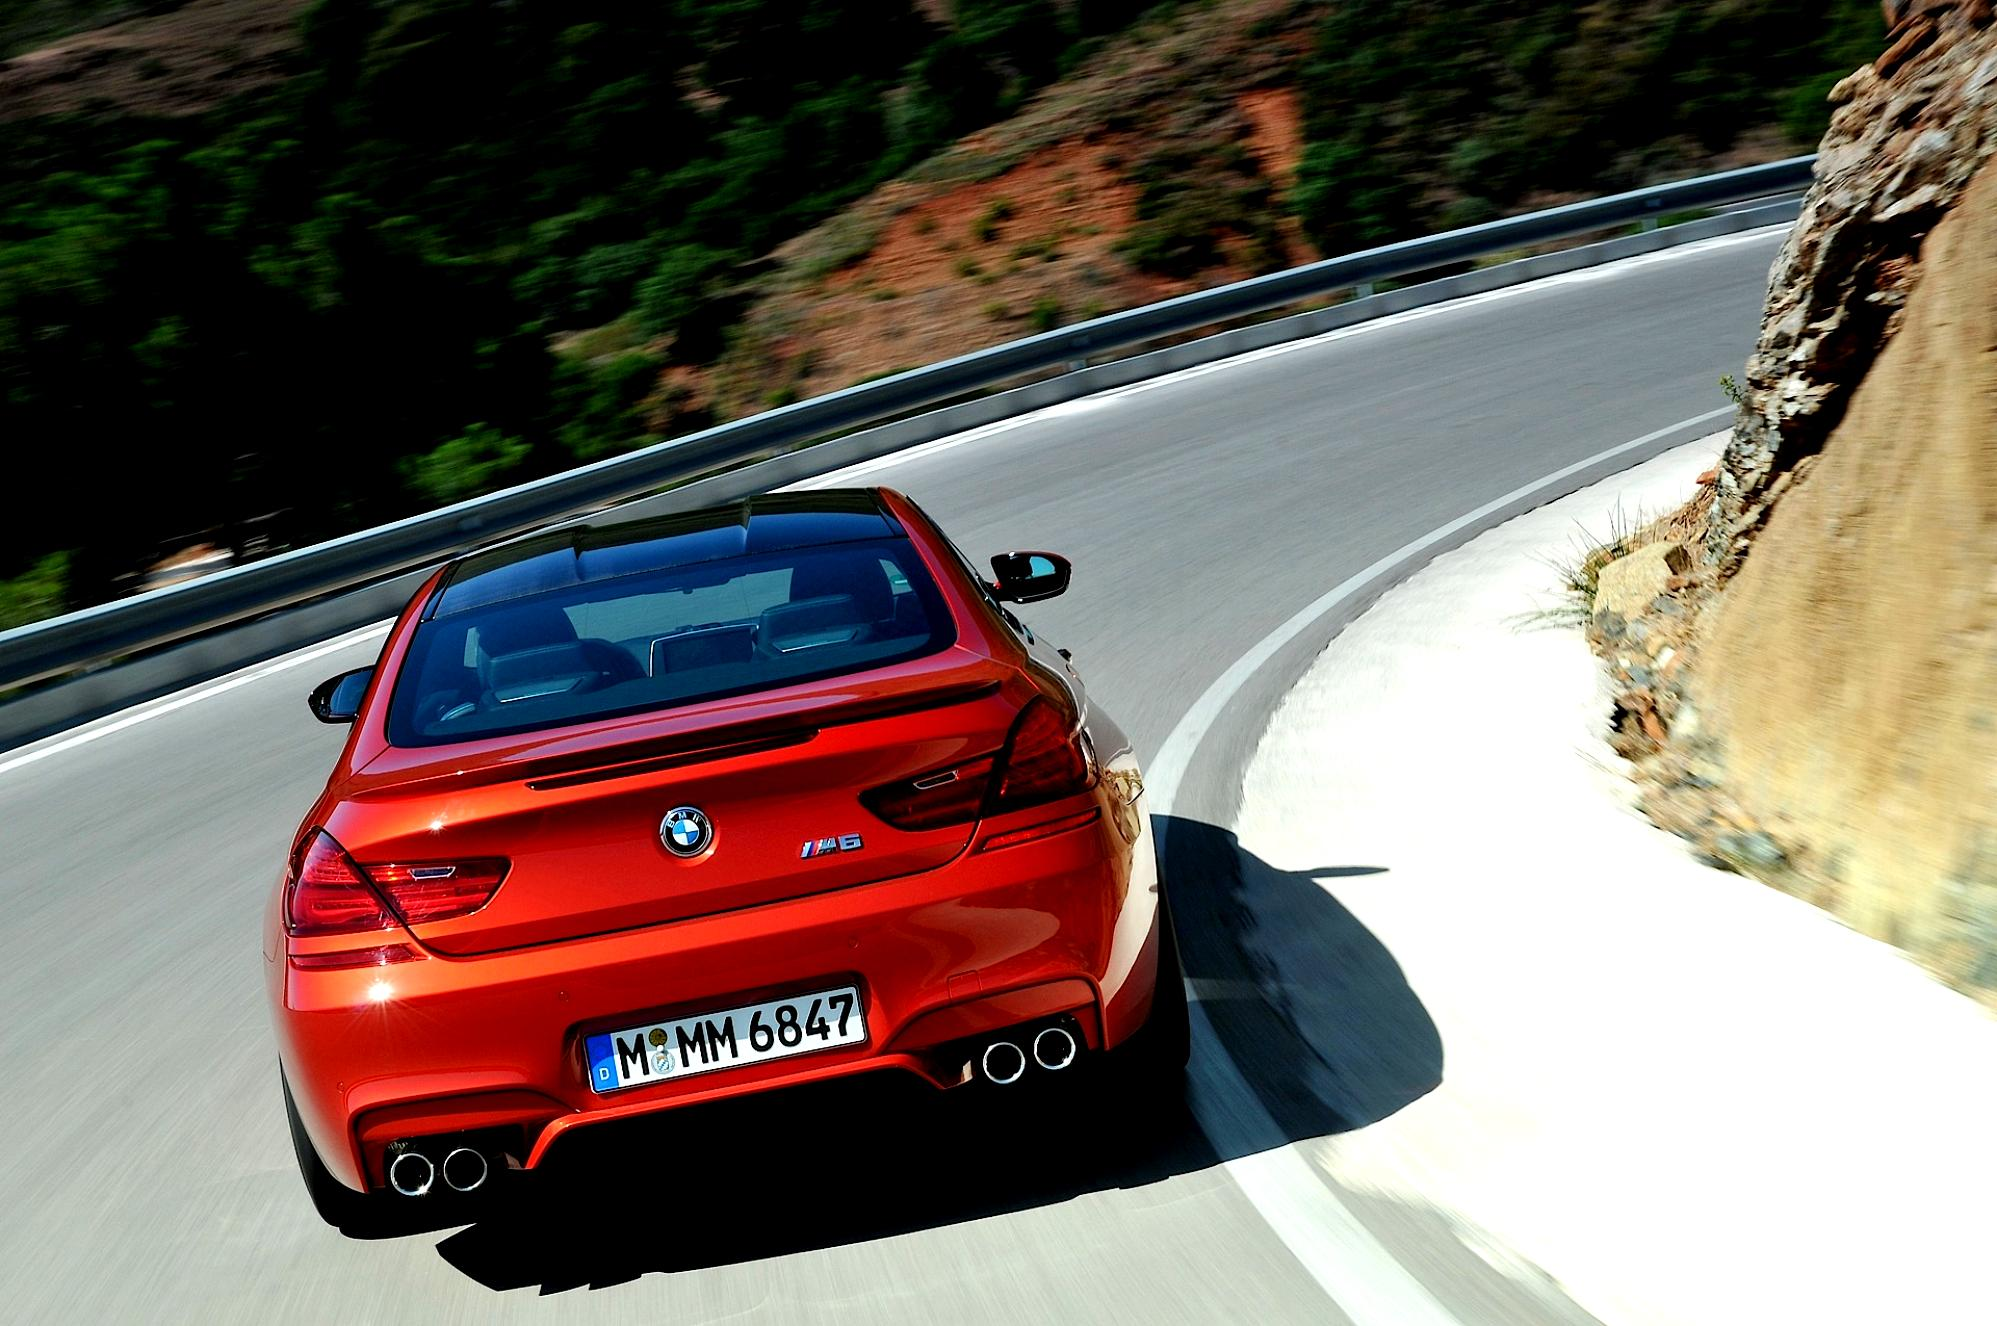 BMW M6 Coupe F13 2012 #50